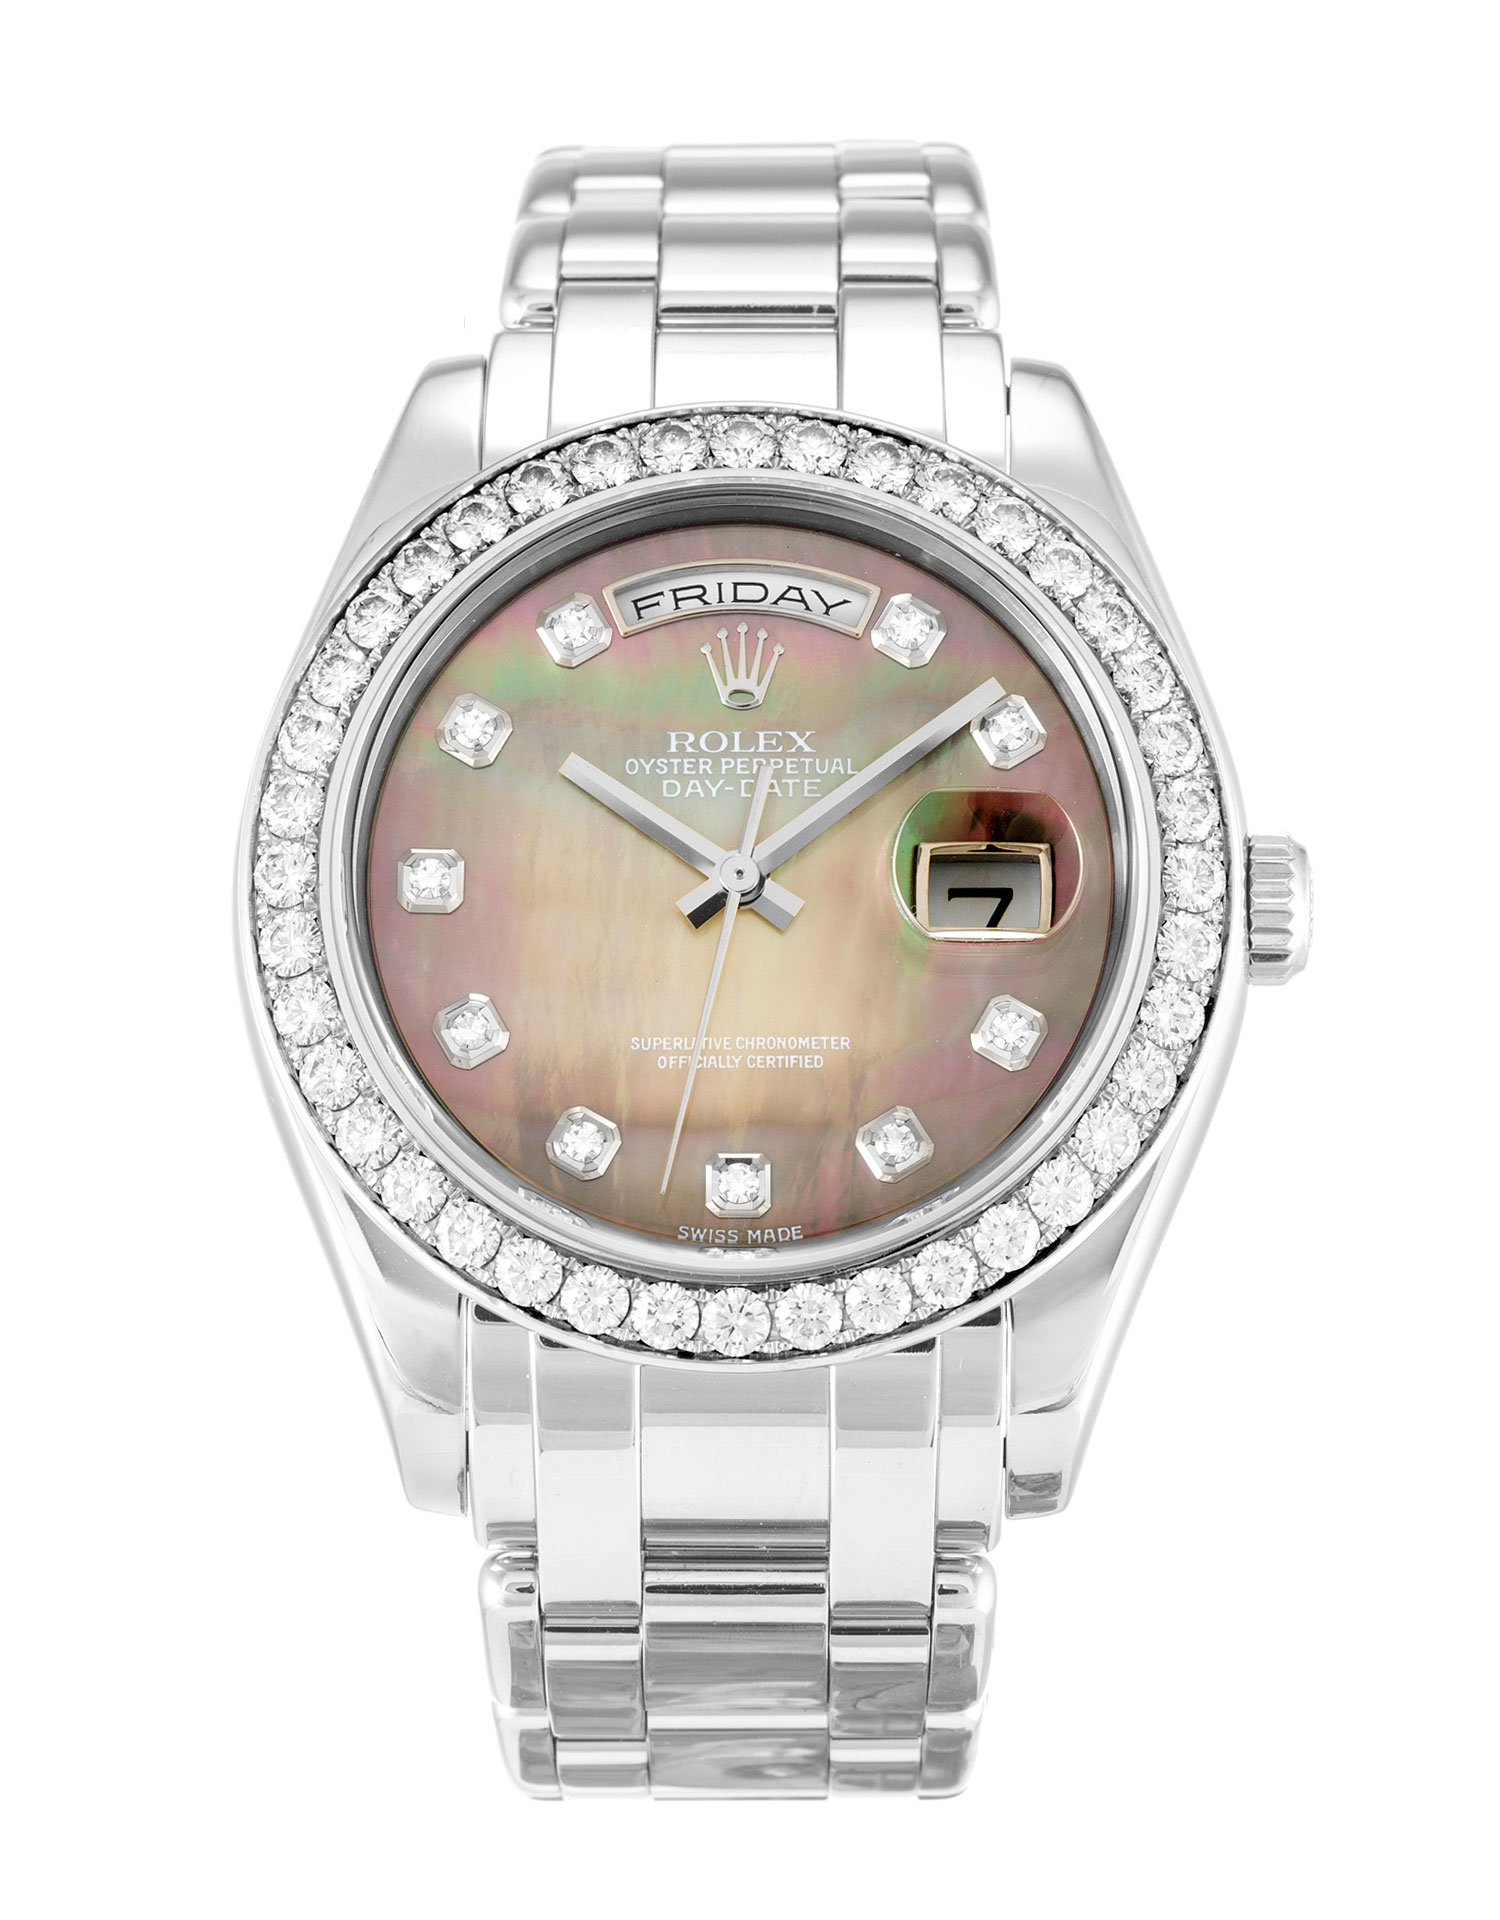 Rolex Day-date 18946 Mens 36 Mm Platinum Set With Diamonds Case Automatic Movement – iapac.to